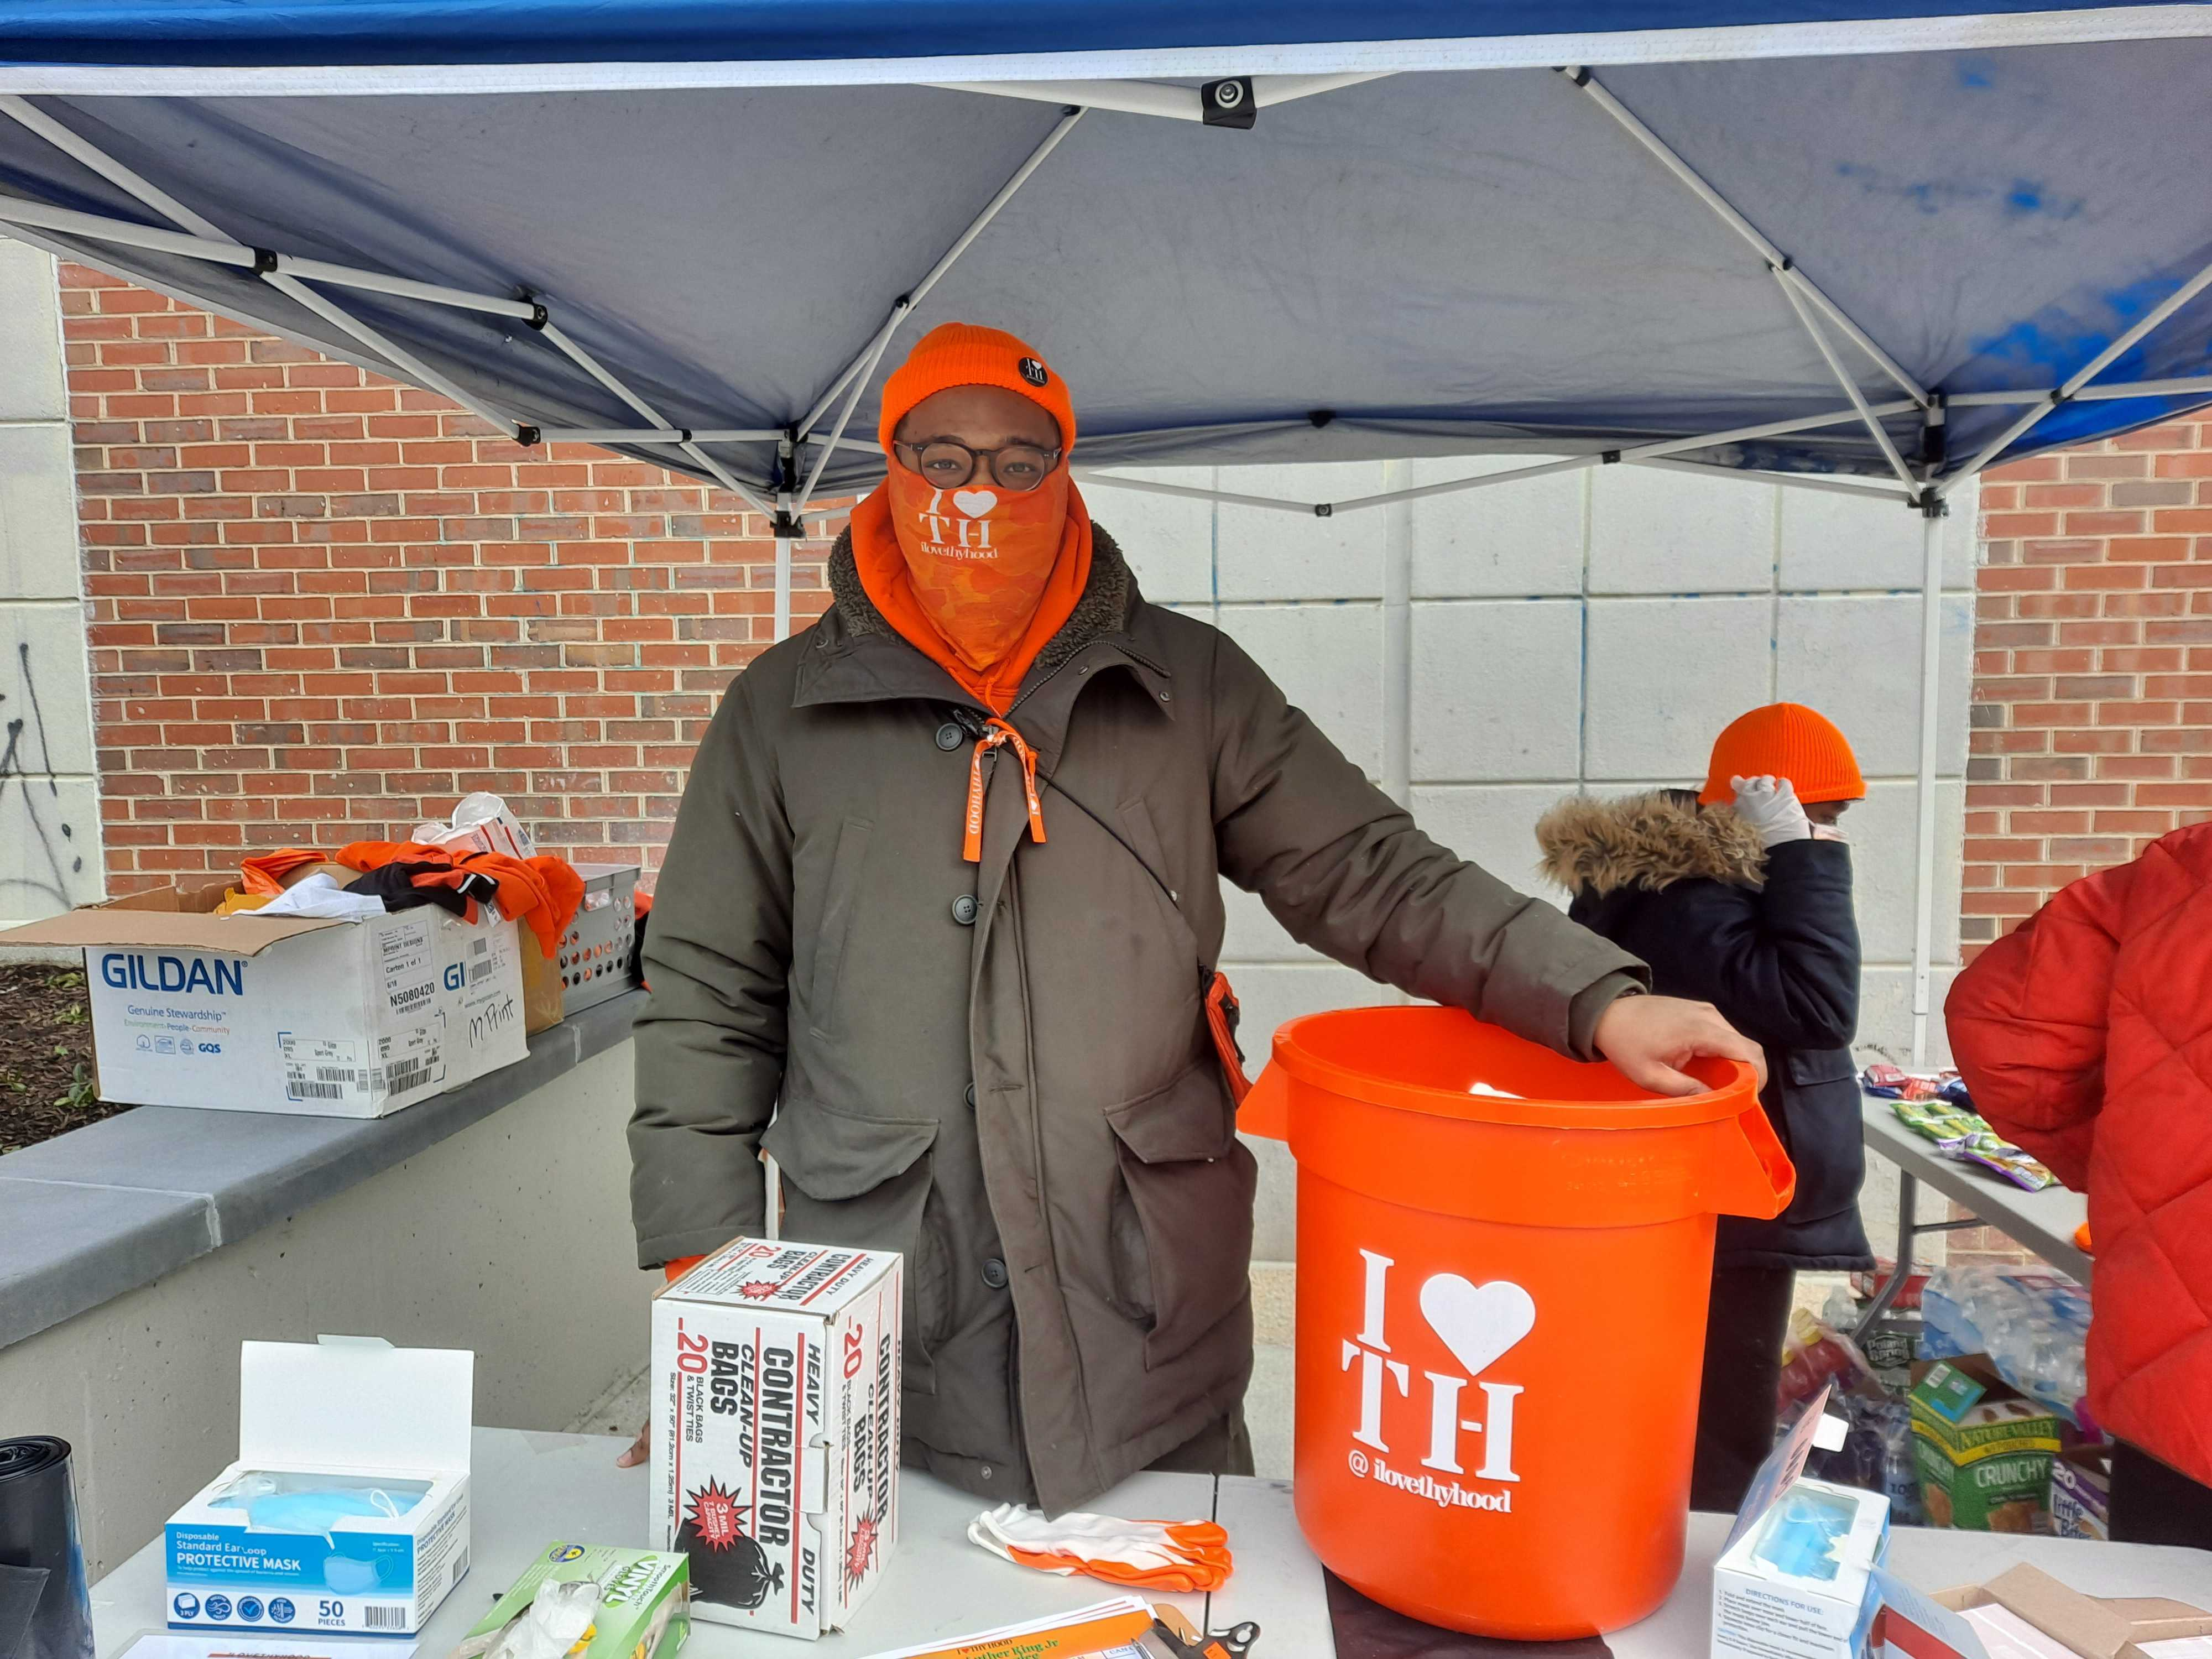 With pandemic and national unrest, MLK Day of Service takes on new meaning